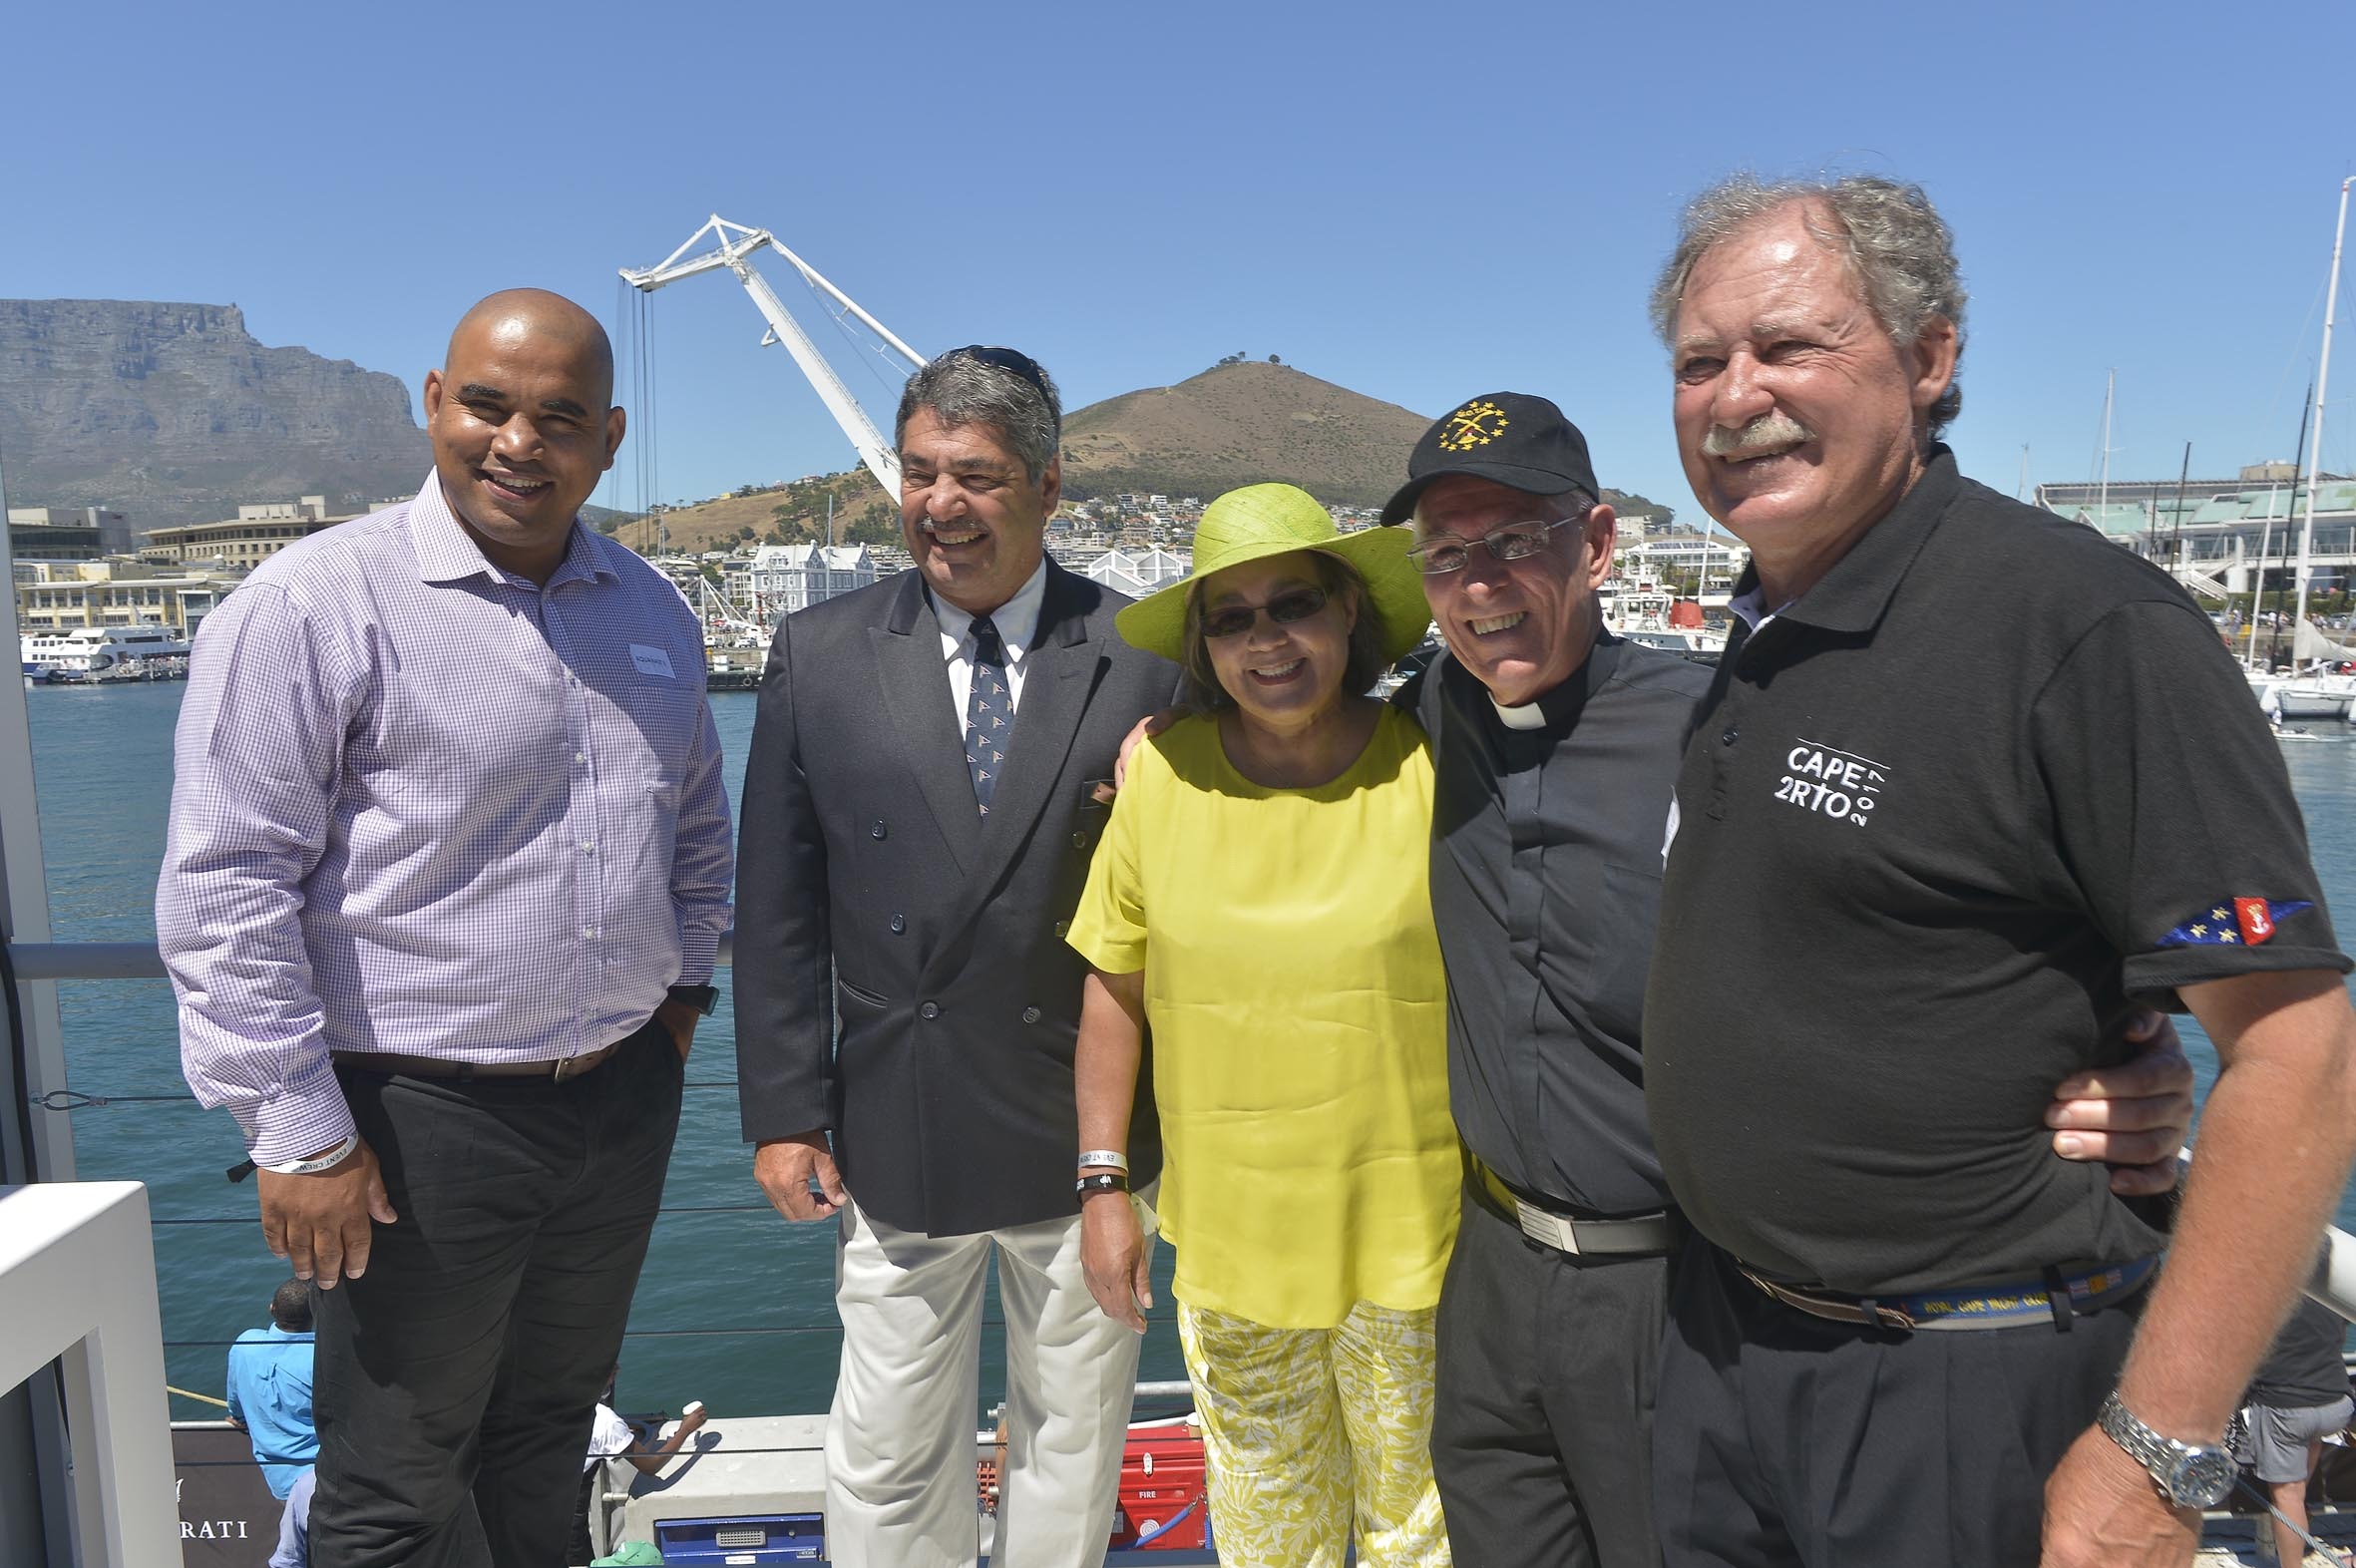 More Photos Of Cape2Rio Start On 1st January (courtesy Of Bruce Sutherland, City Of Cape Town).